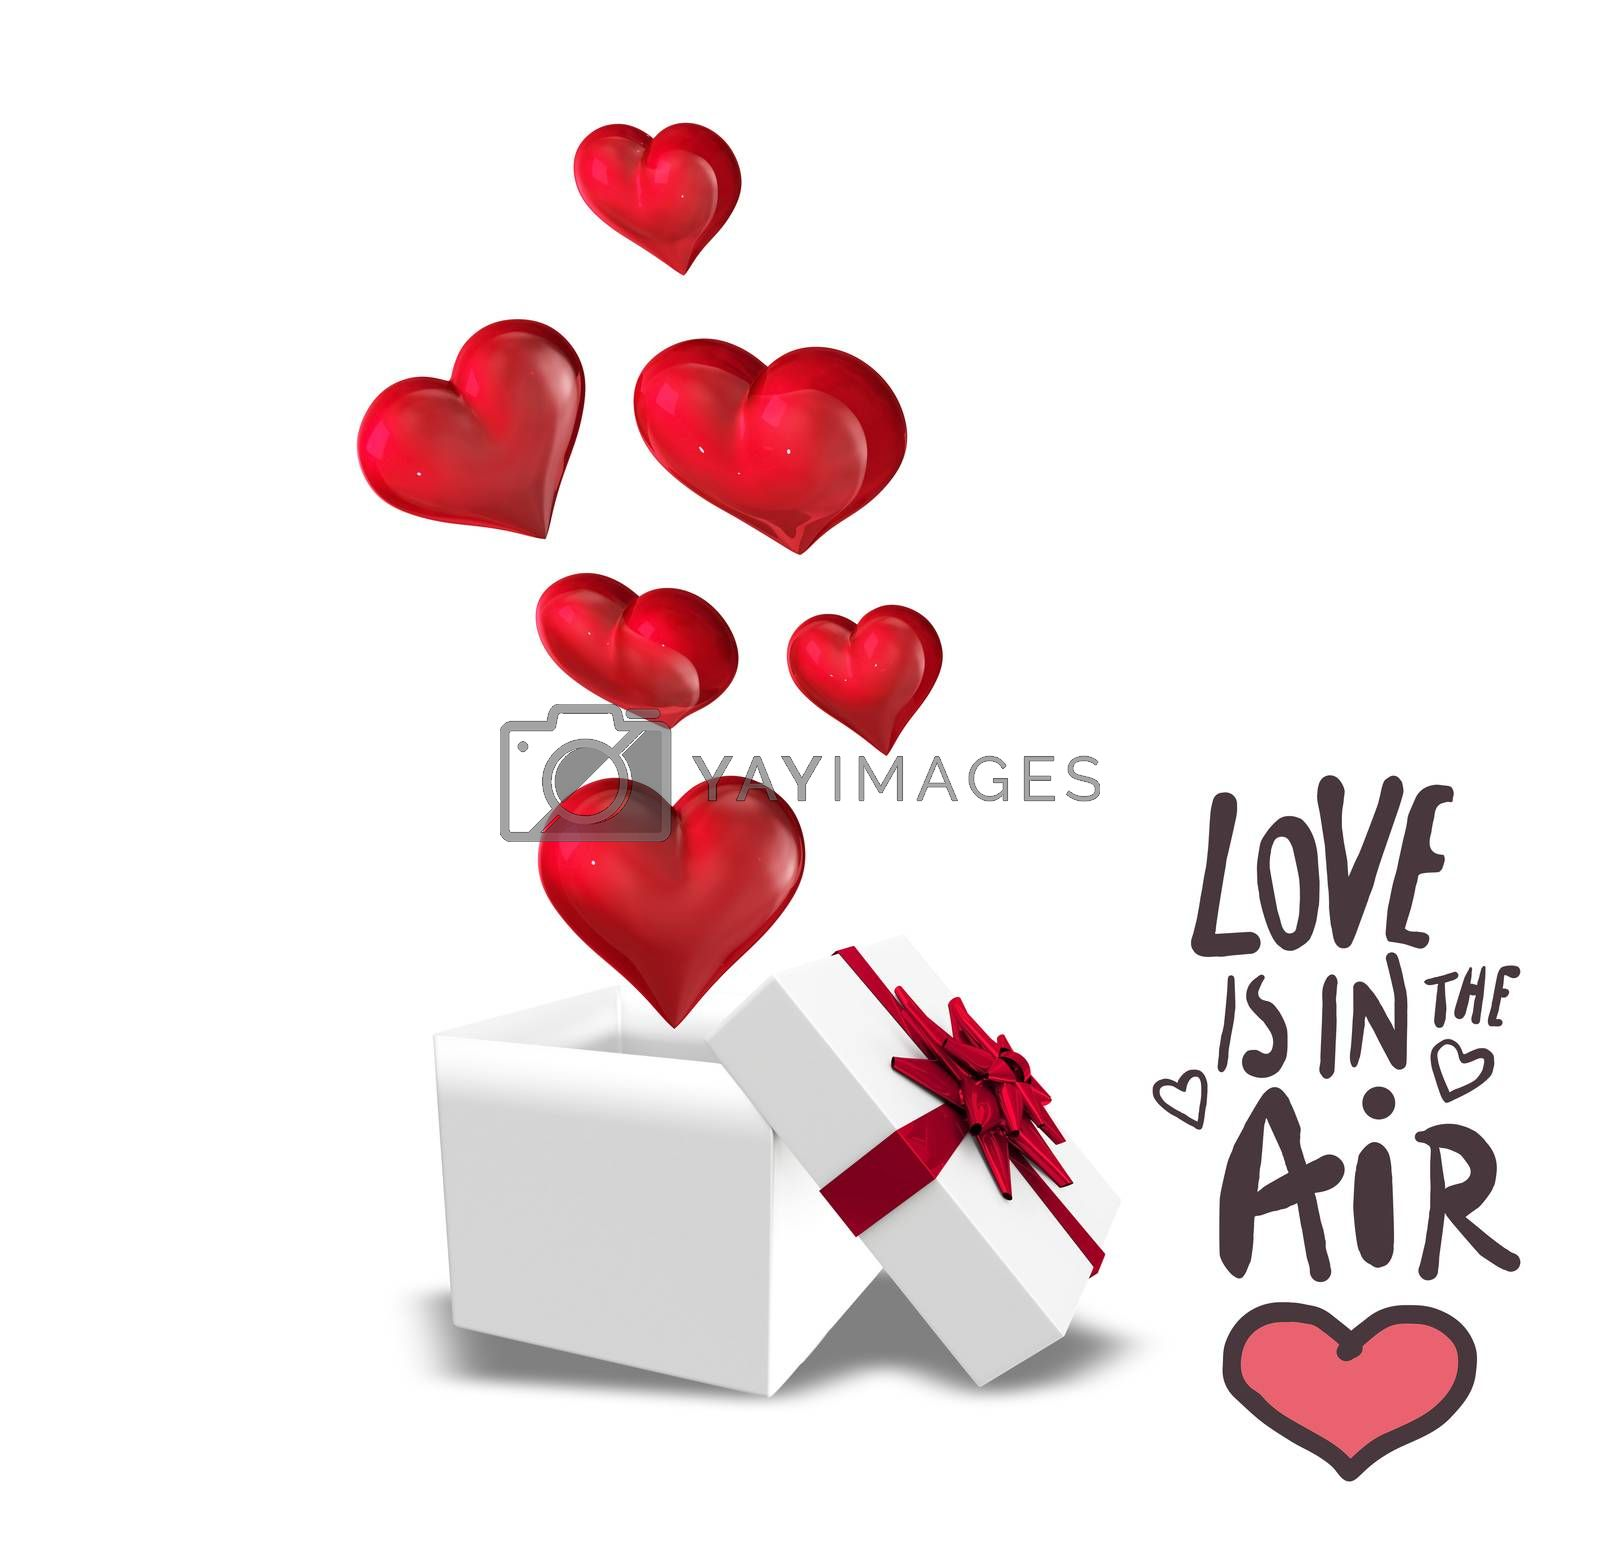 love is in the air against hearts flying from box